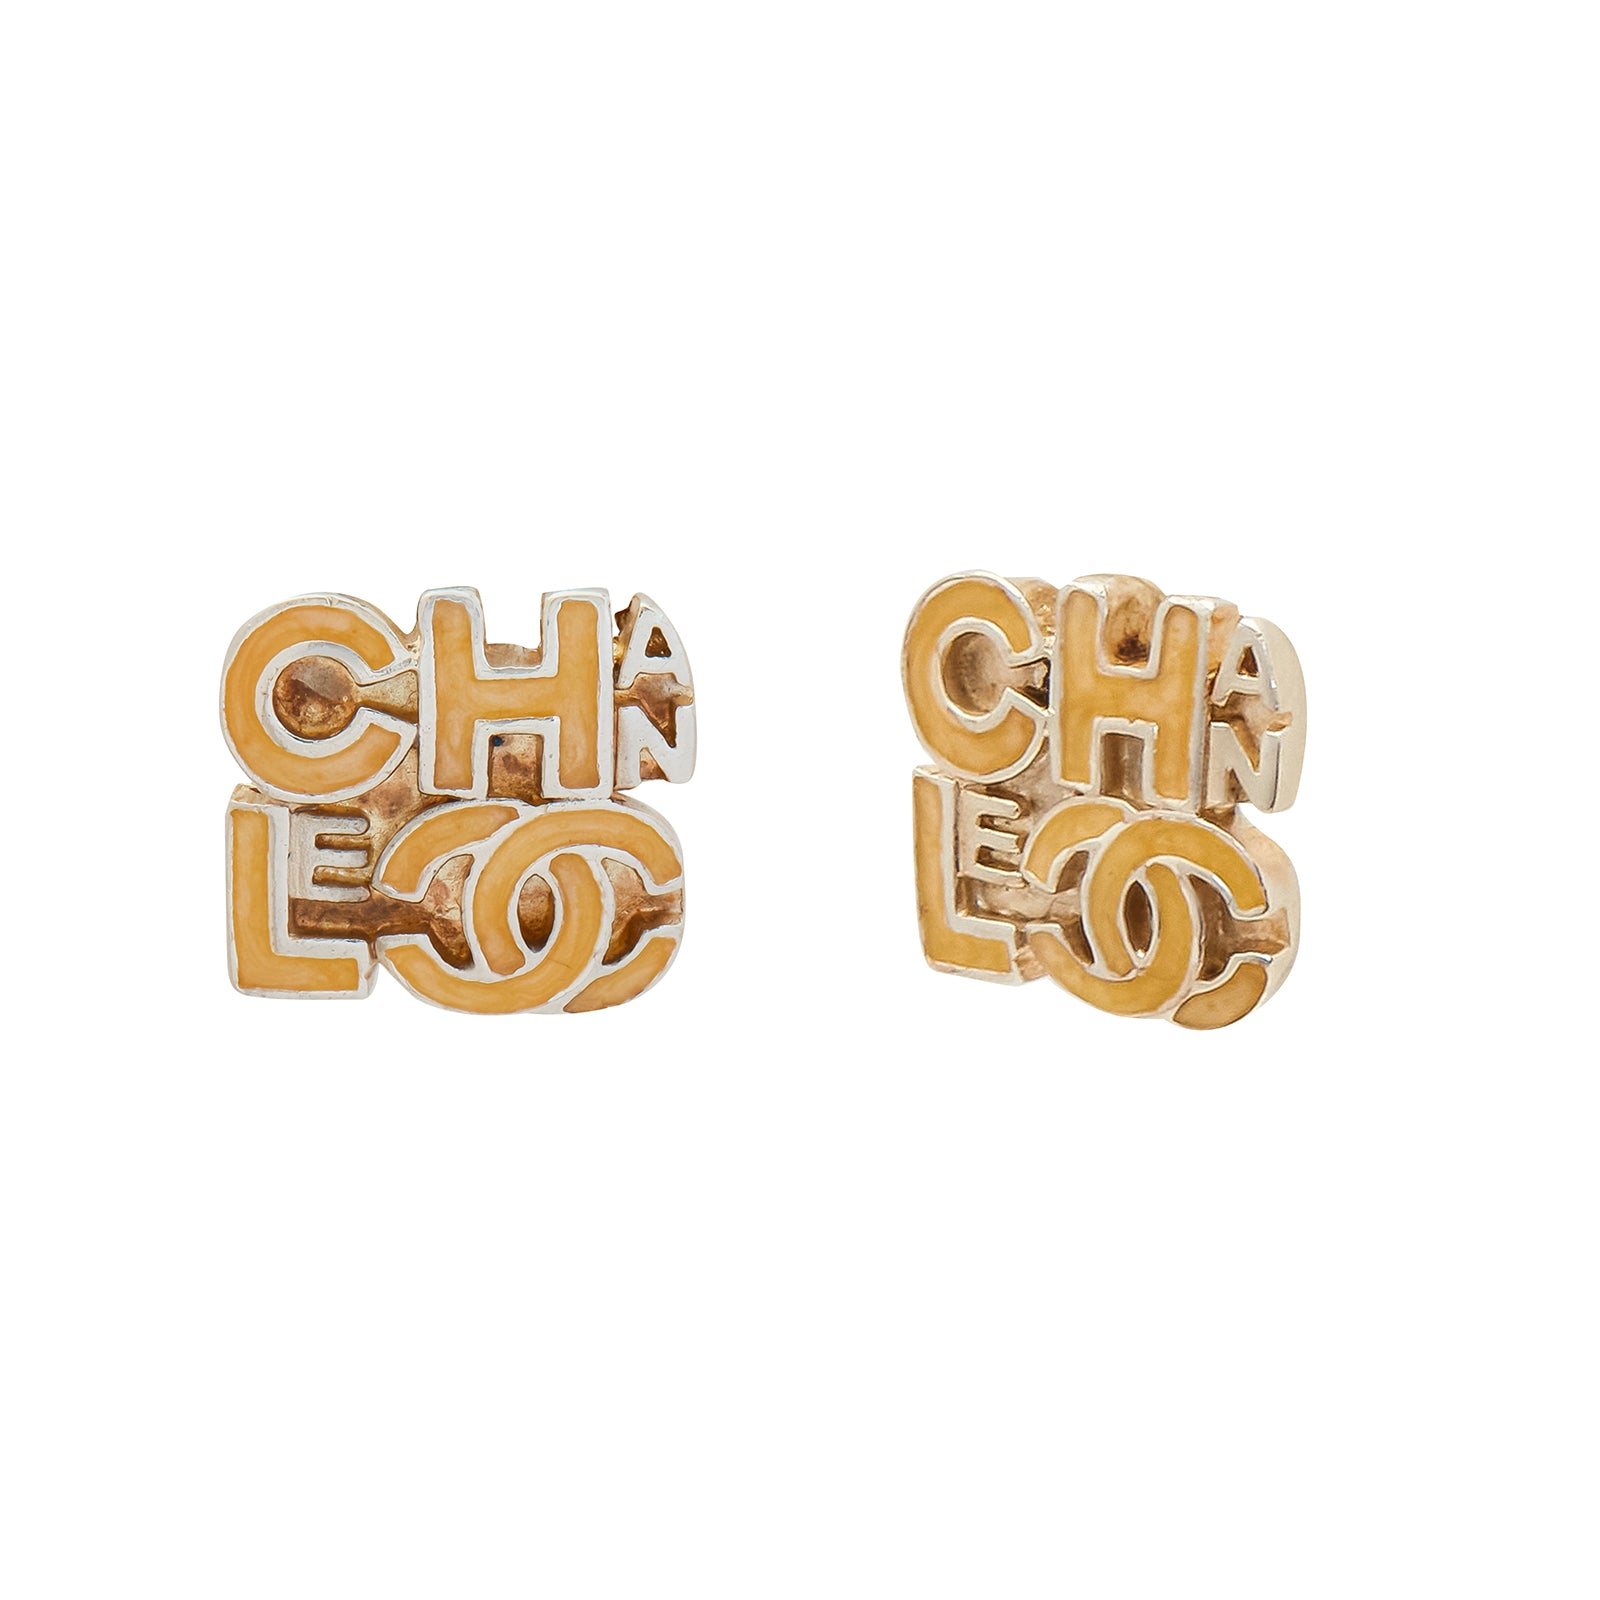 Antique & Vintage Jewelry Chanel Enamel Logo Earrings - Earrings - Broken English Jewelry